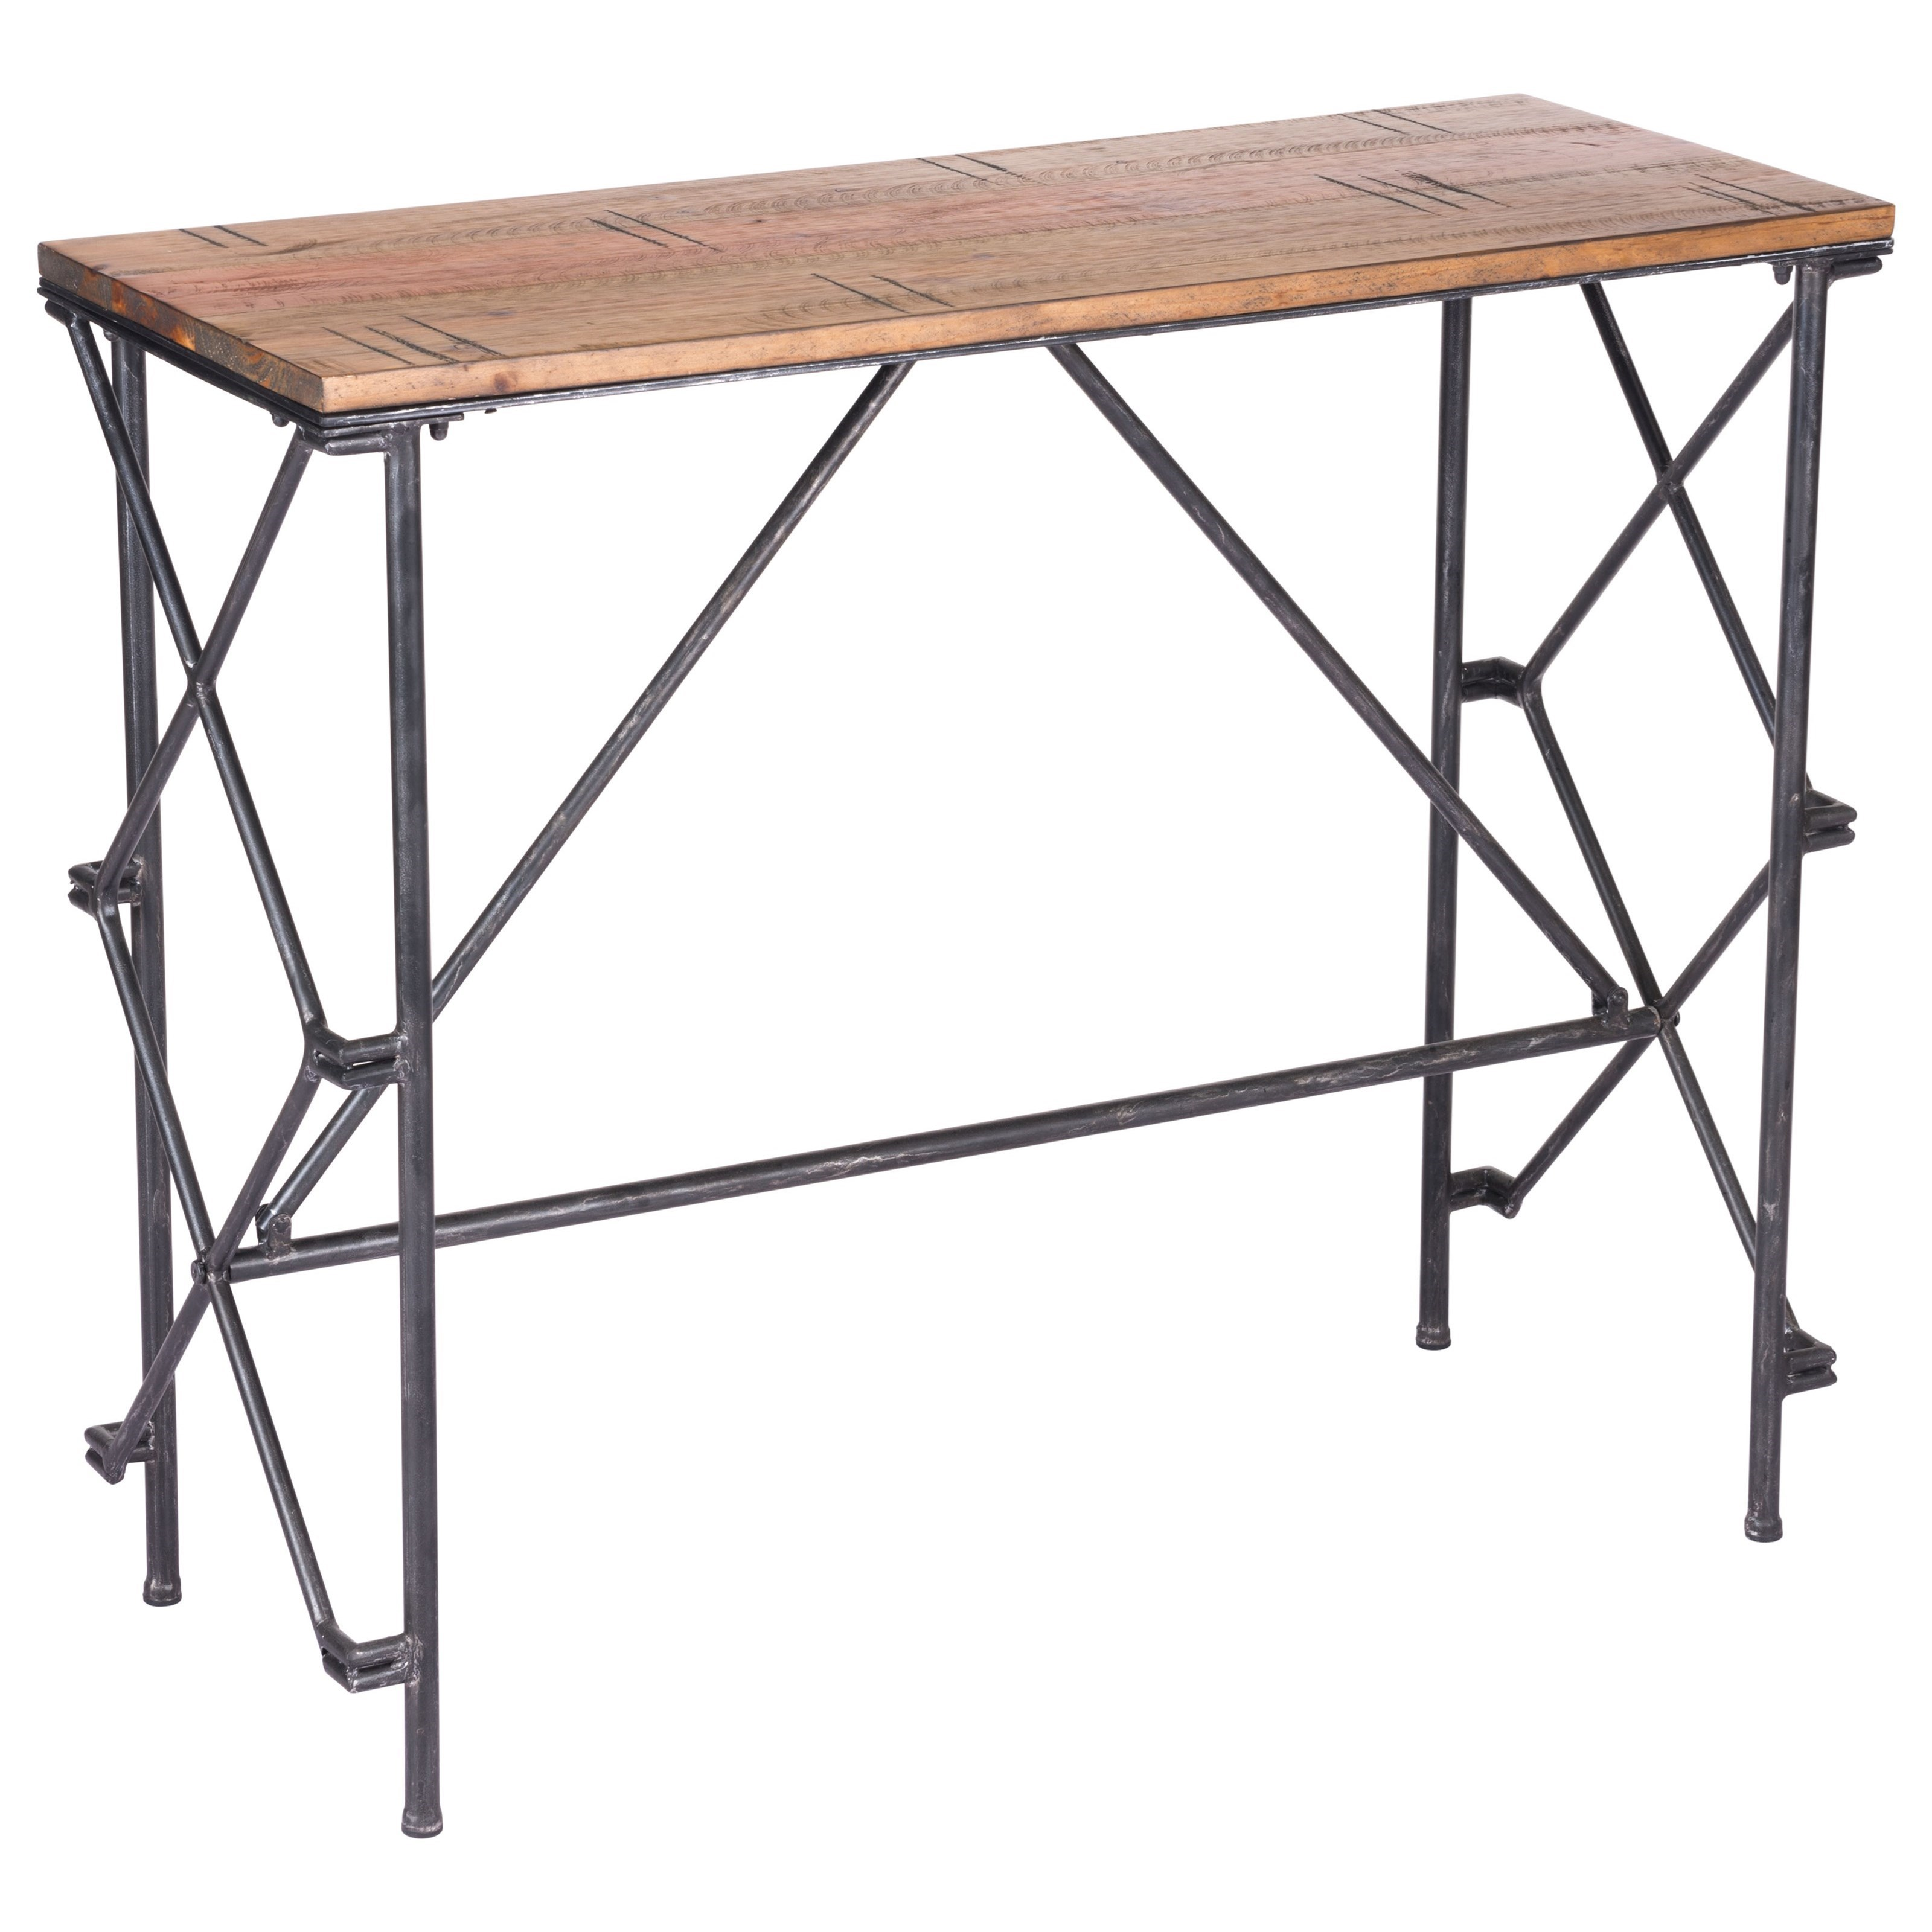 Accent Tables Esquil Console Table by Zuo at Nassau Furniture and Mattress